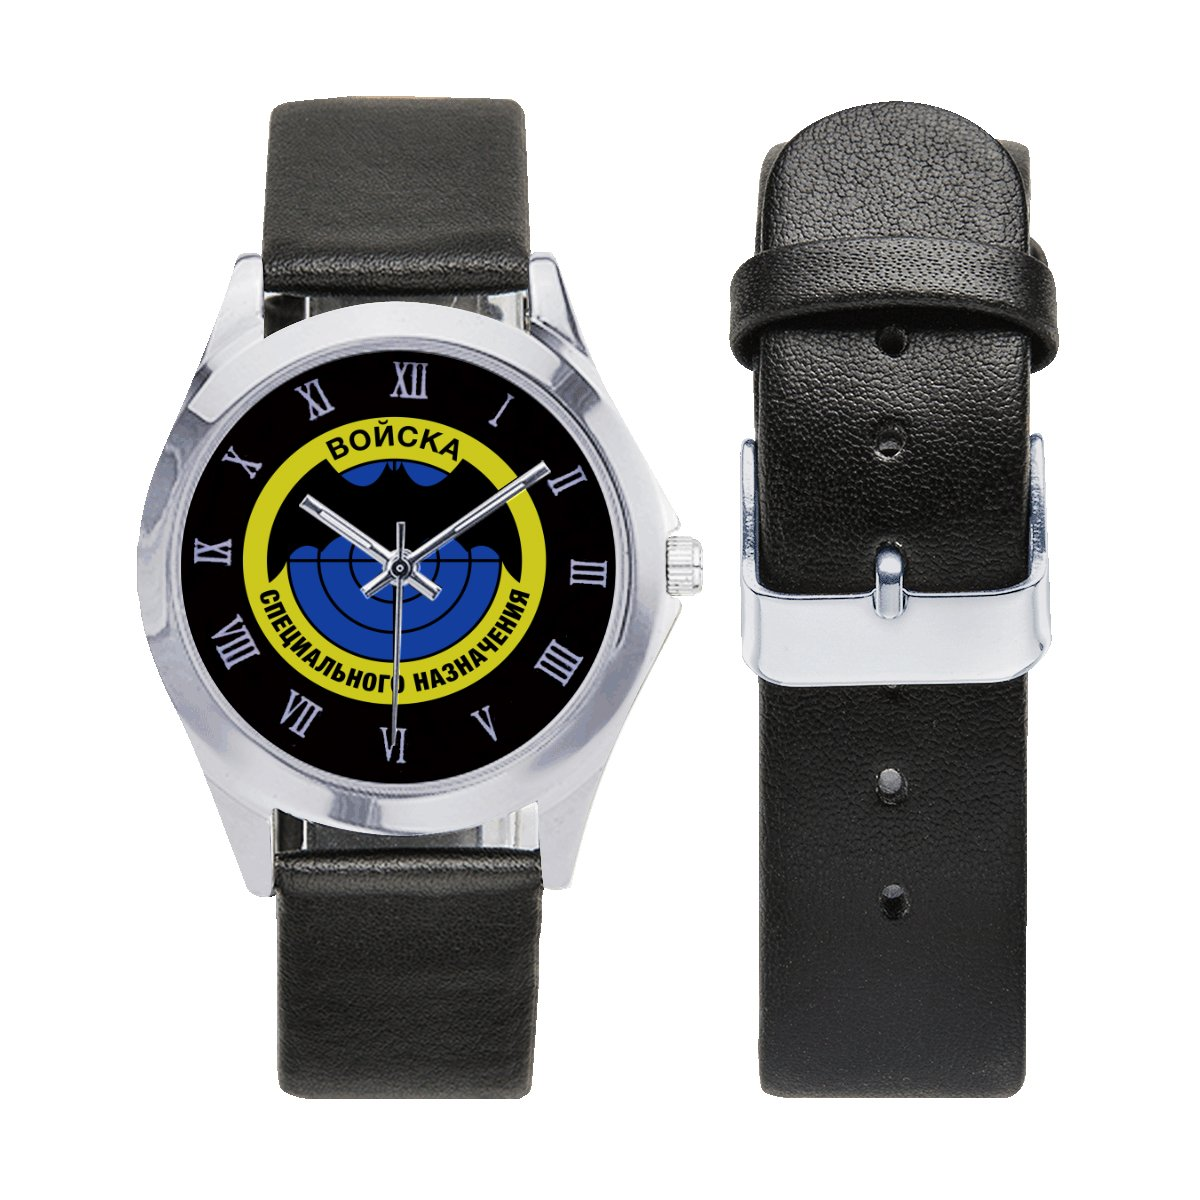 Spetsnaz Rusia Special Forces Army Leather Strap Watch Men Women Wrist Watches a perfect accessory